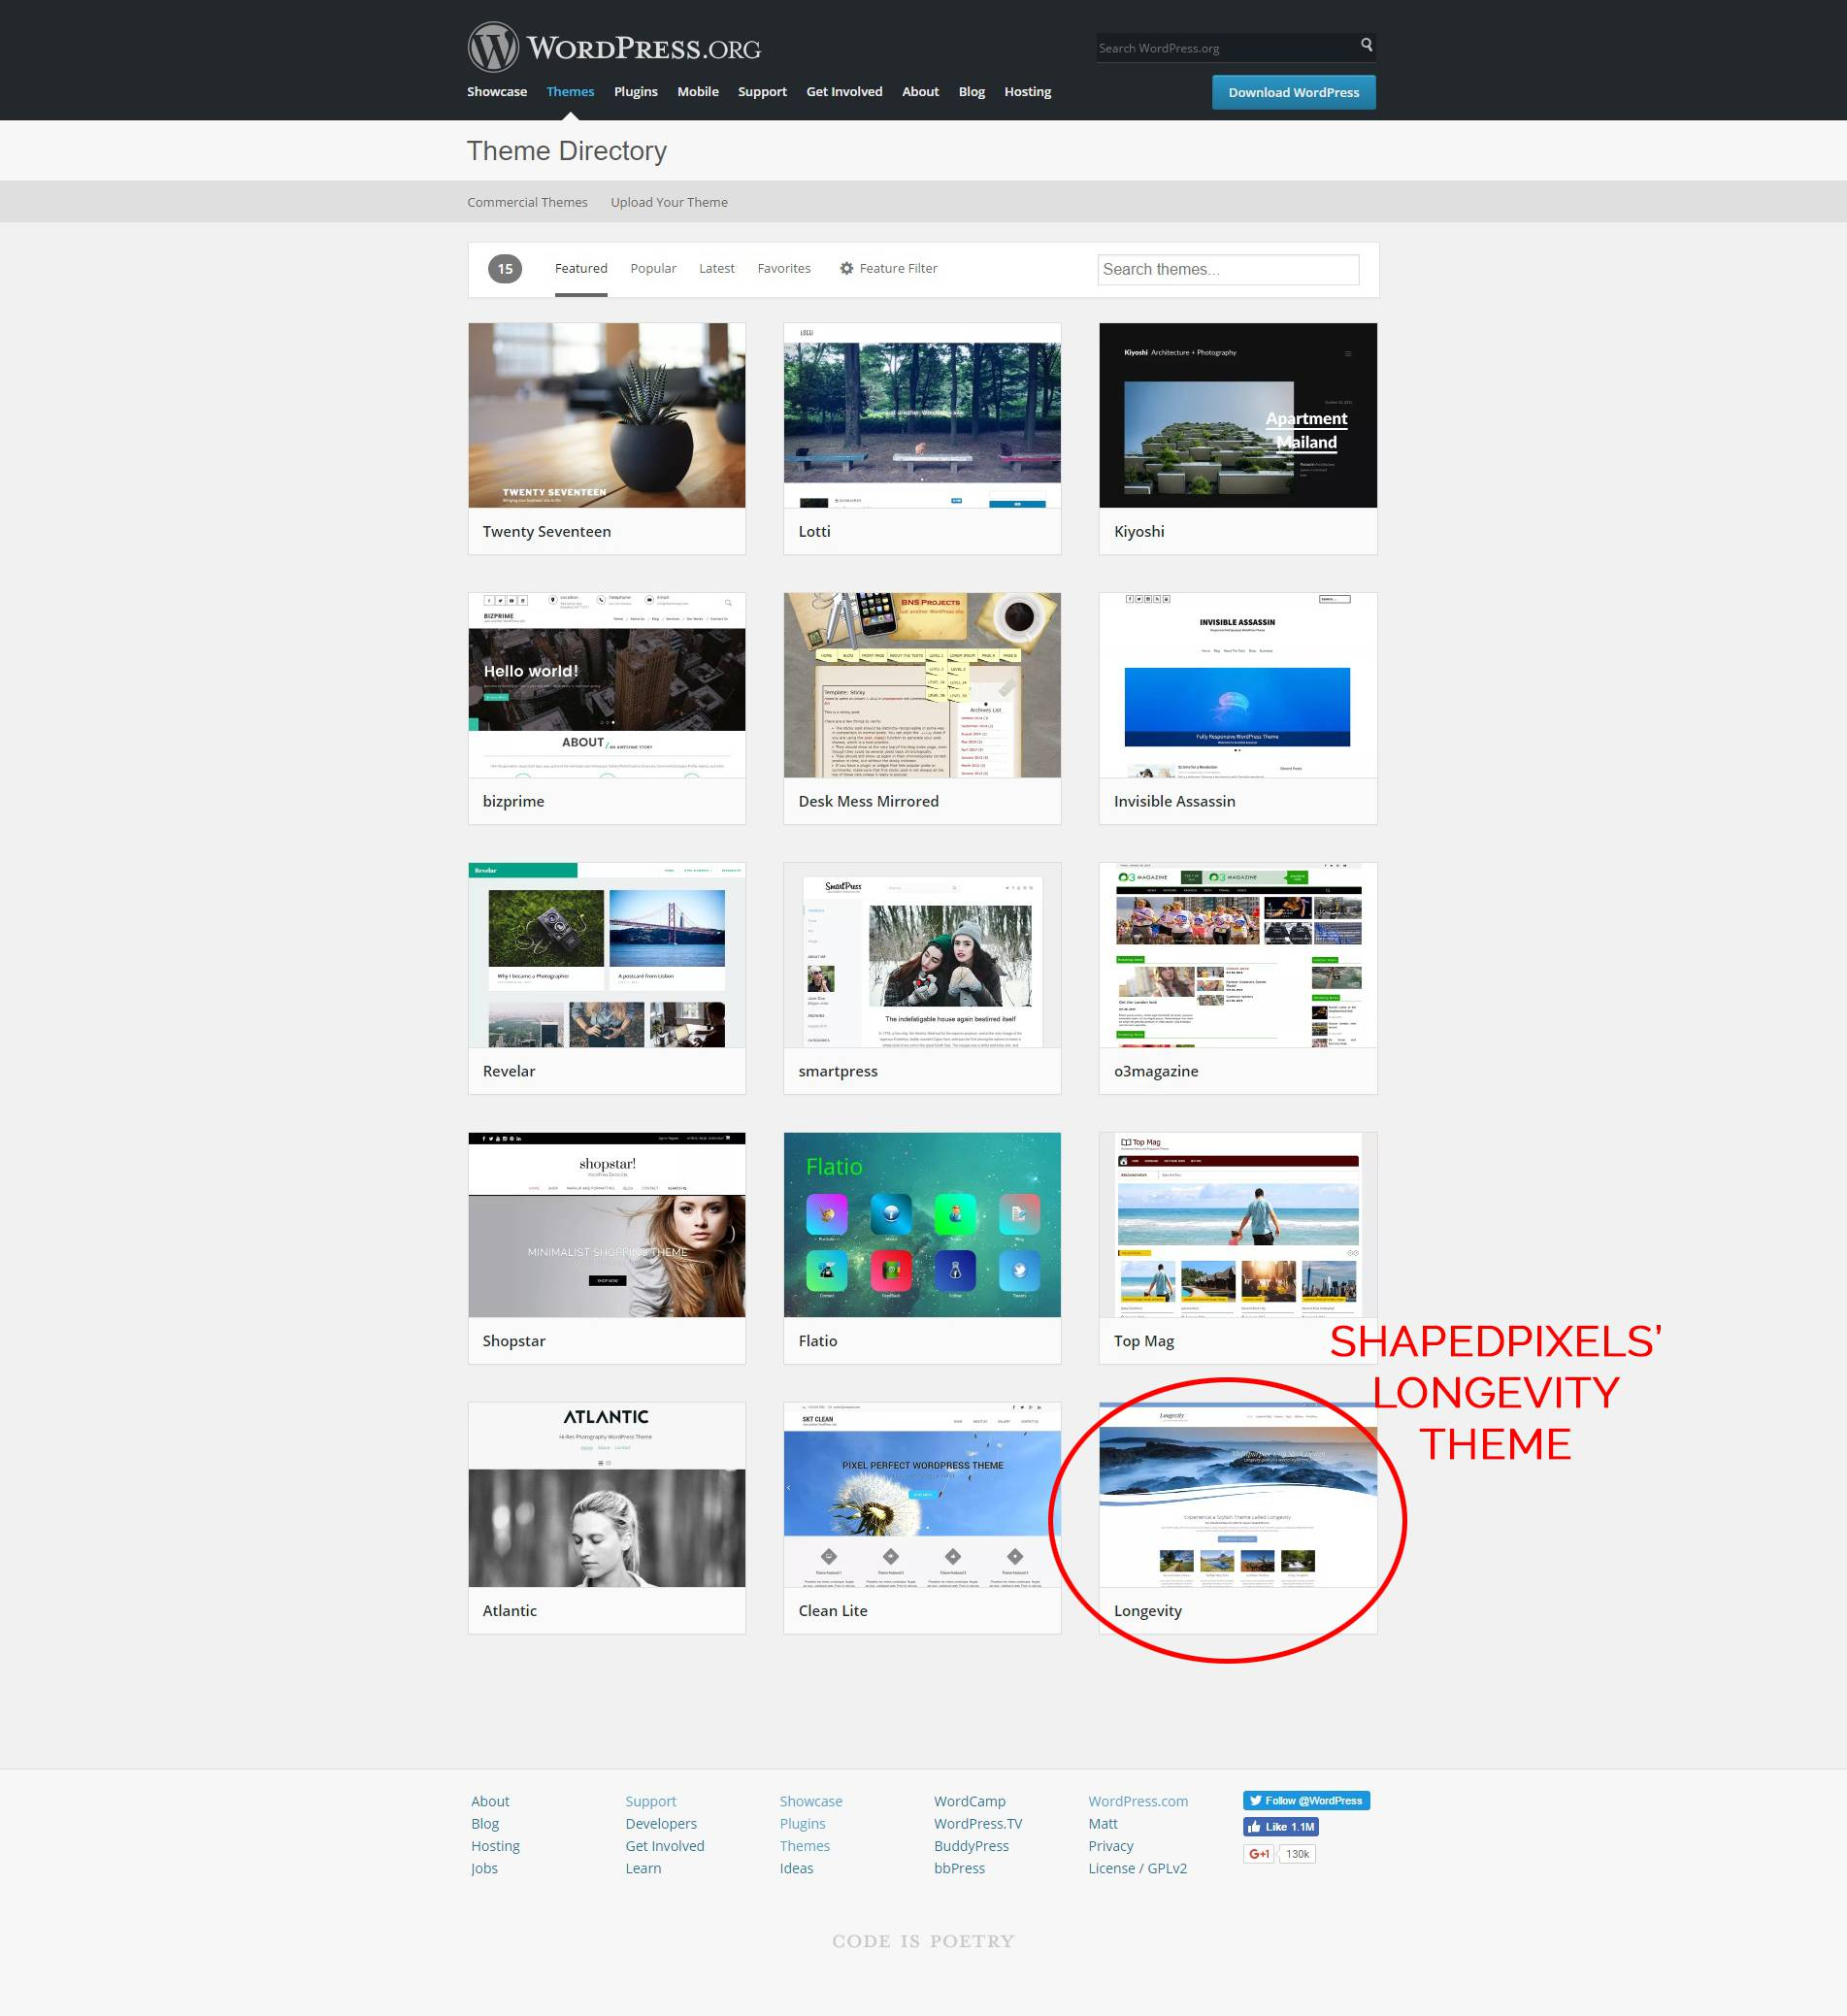 Longevity theme Featured on front page of WP.org themes repository